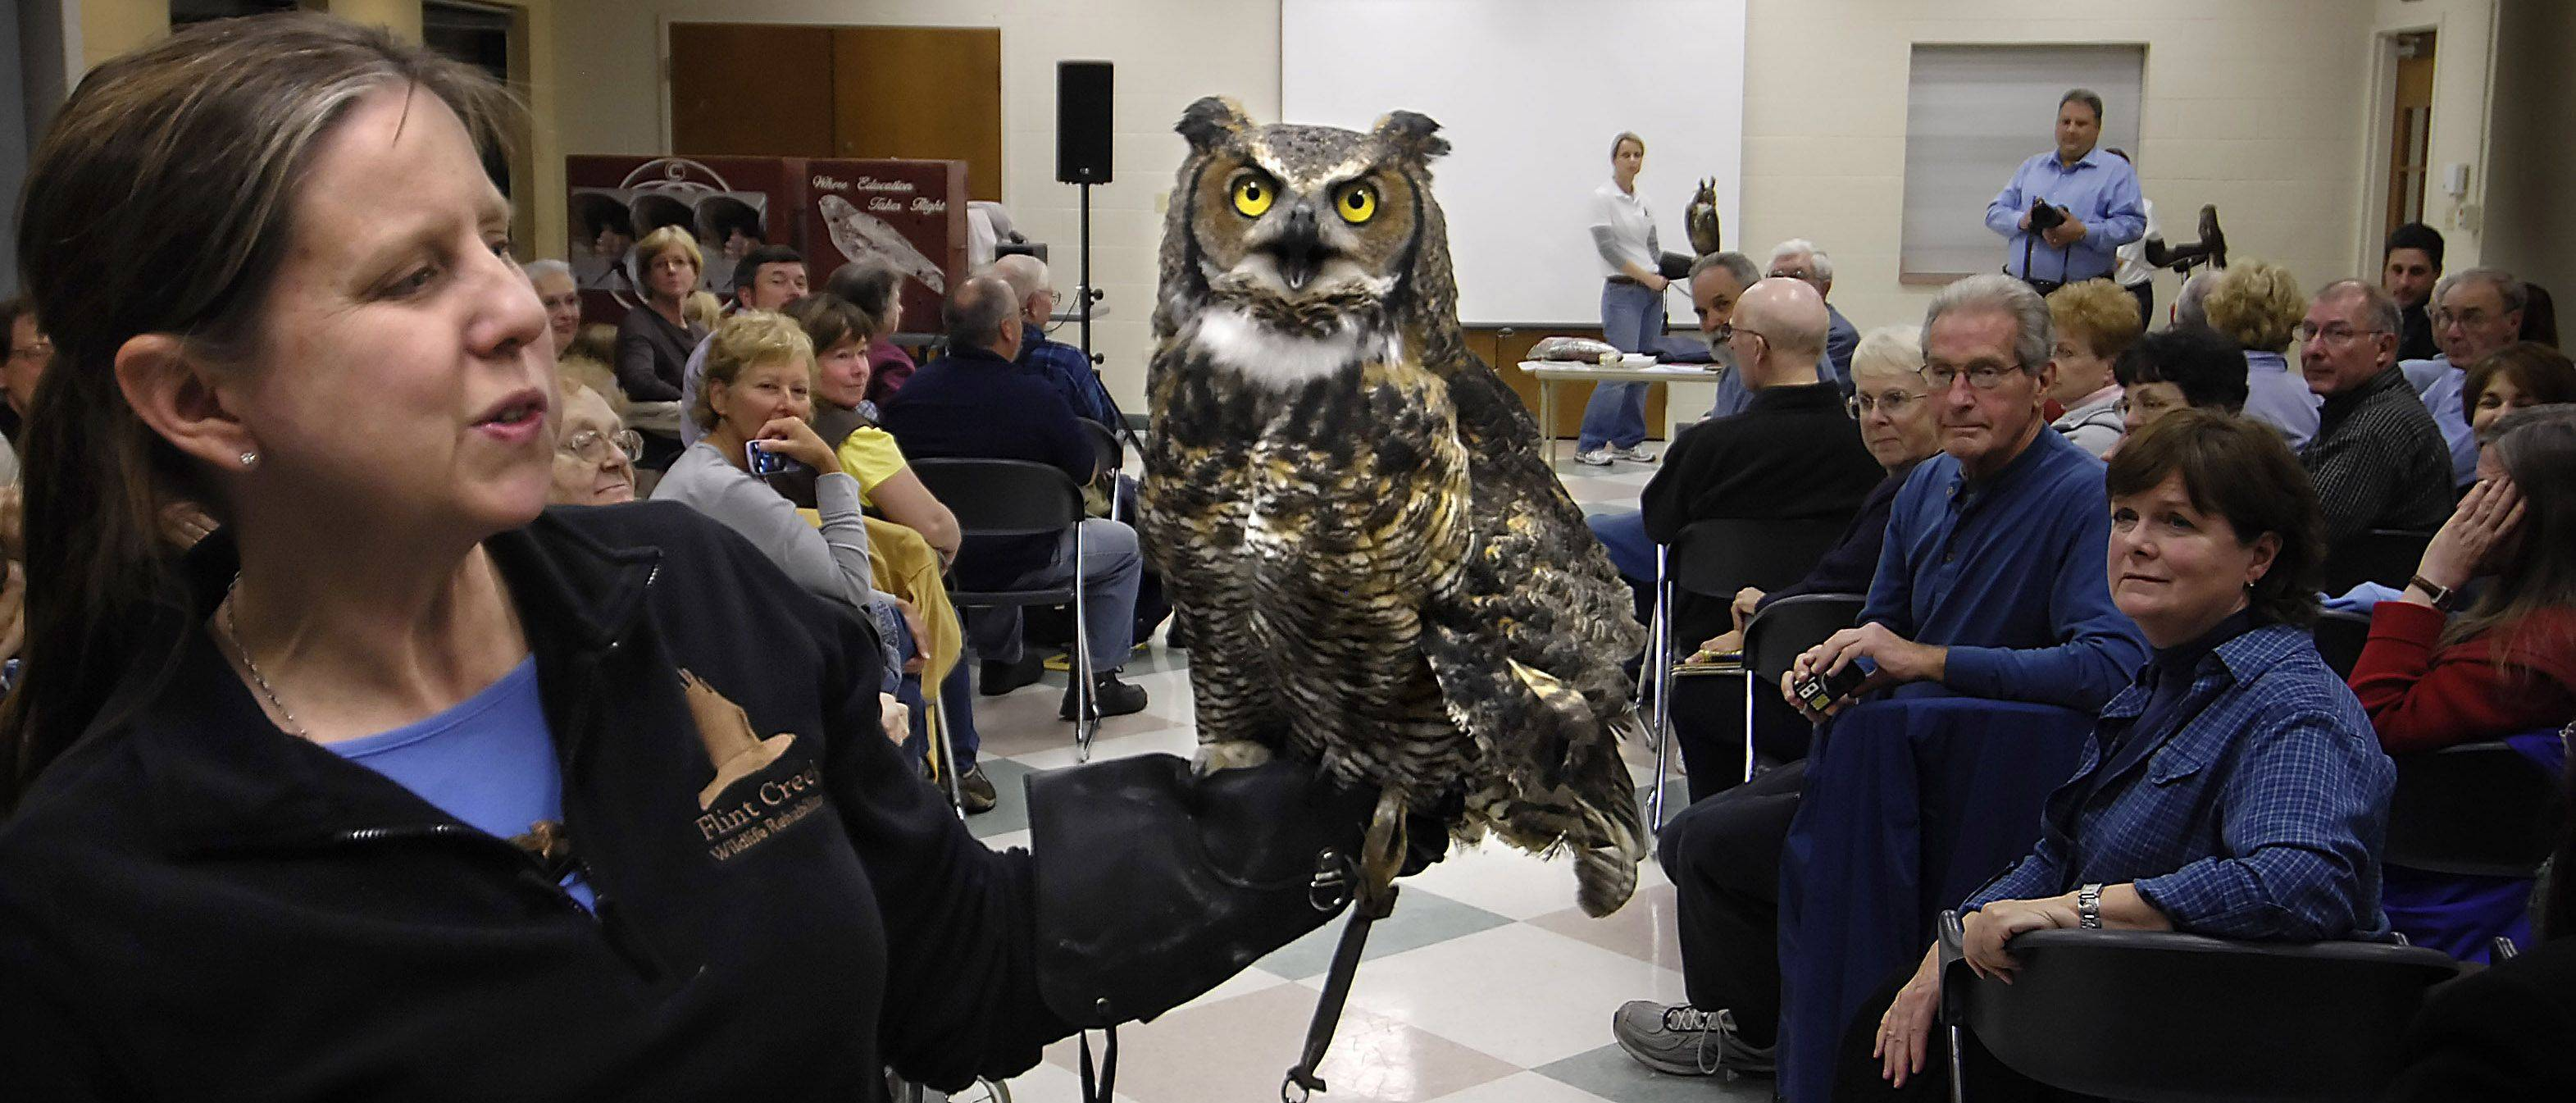 Dawn Keller, founder of Flint Creek Wildlife Rehabilitation Inc., holds Pennsylvania, a large female great-horned owl during the Kane County Audubon Society monthly meeting at the Pottawatomie Community Center in St. Charles. At 4 pounds, Pennsylvania is considered heavy. She is one of six birds of prey Keller uses for education purposes and cannot be released.